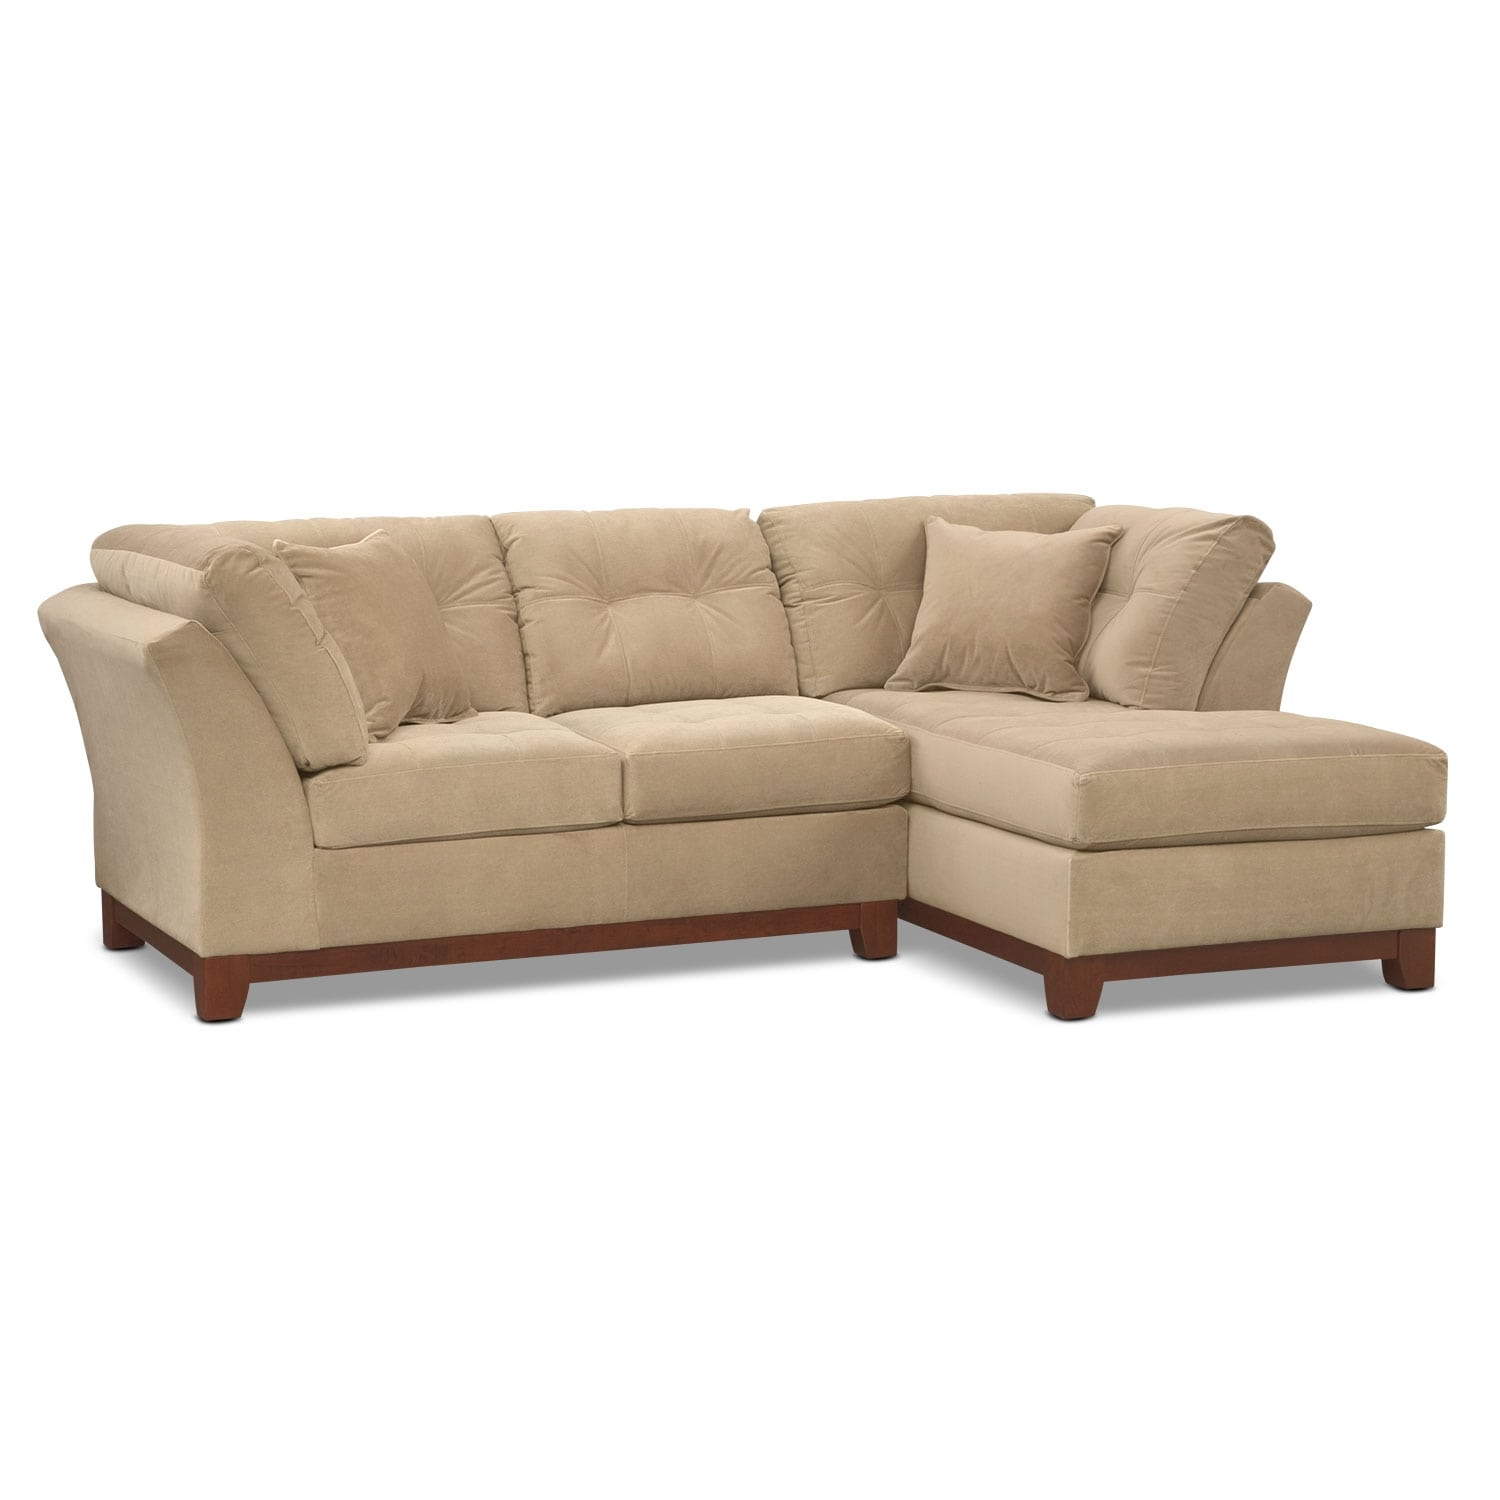 Living Room Furniture - Solace 2-Piece Right-Facing Chaise Sectional - Cocoa